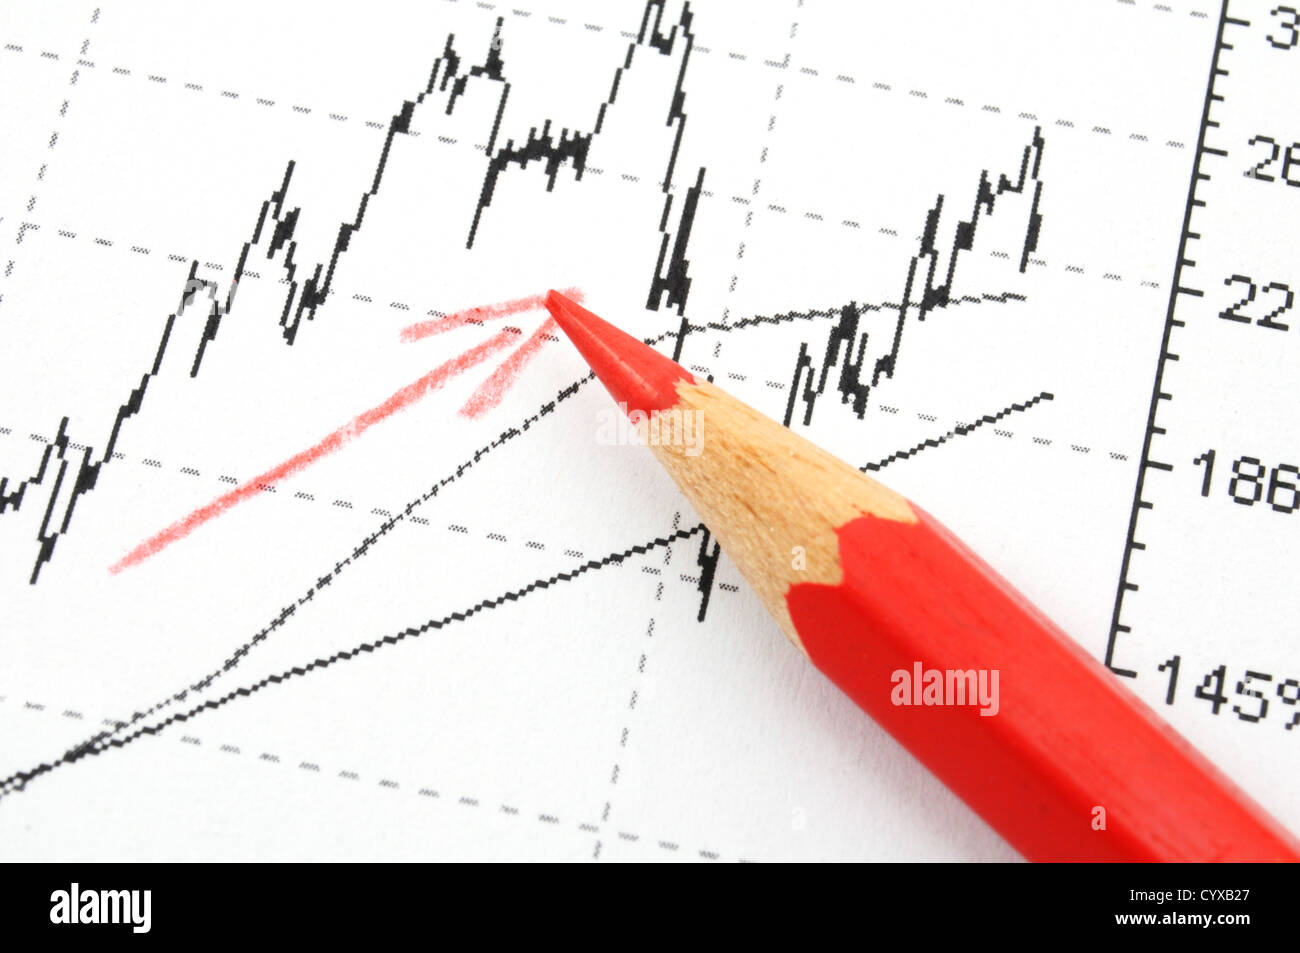 Business growth chart showing financial success on stock market business growth chart showing financial success on stock market nvjuhfo Gallery